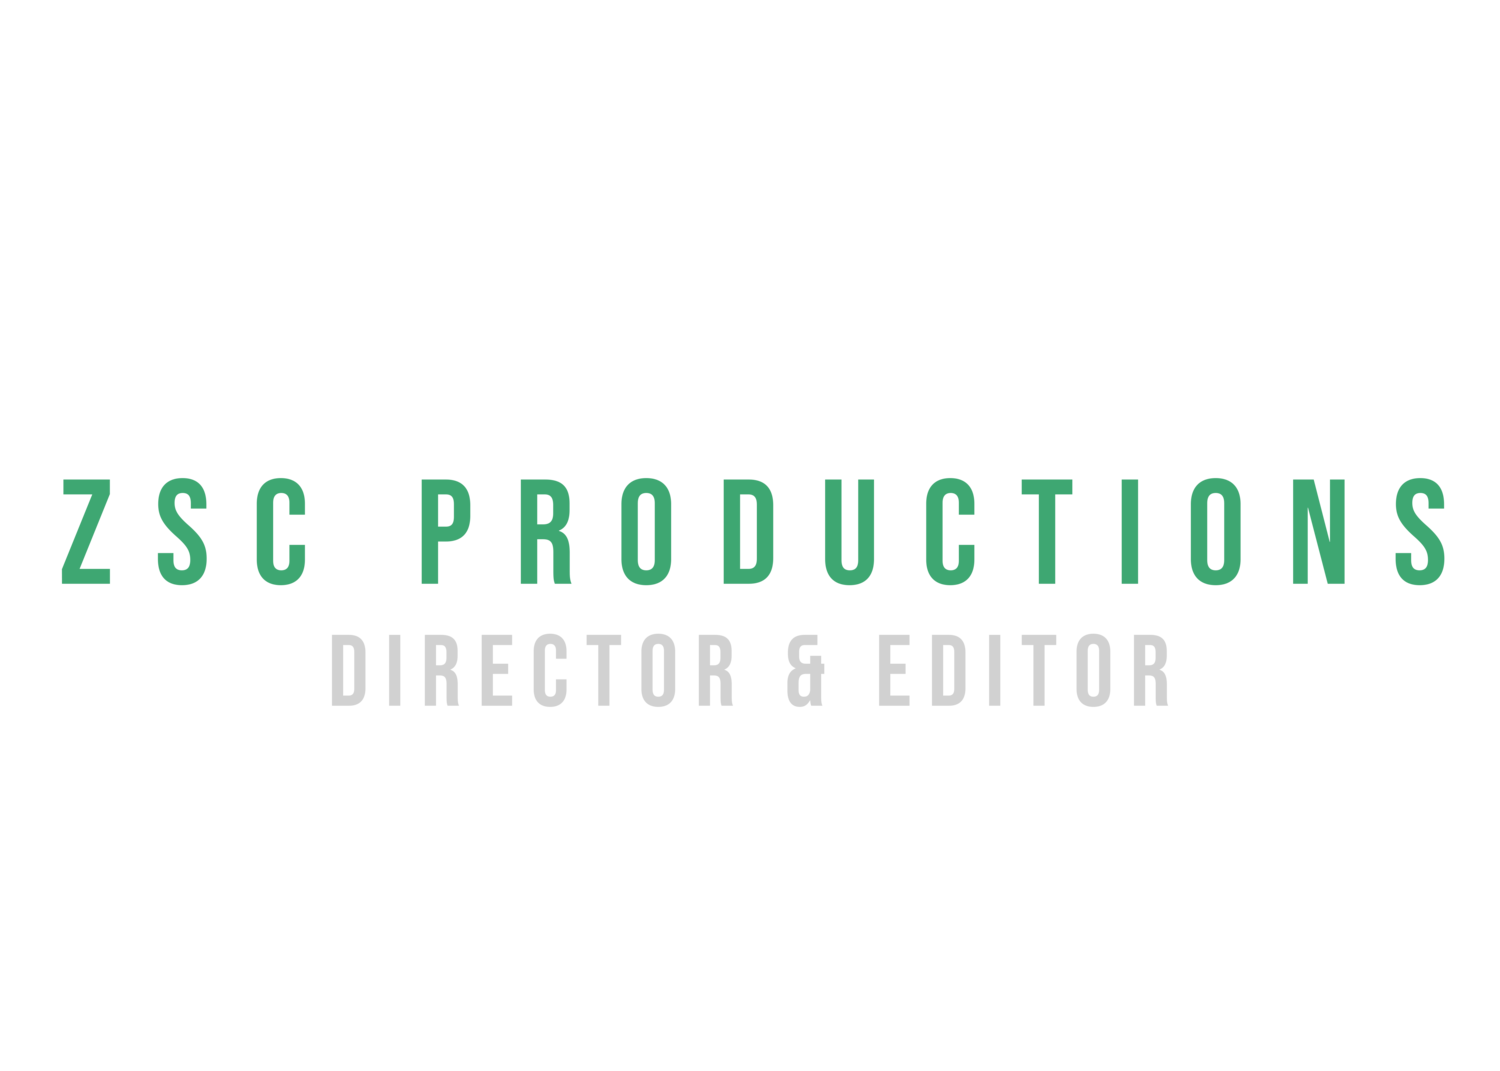 ZSC Productions